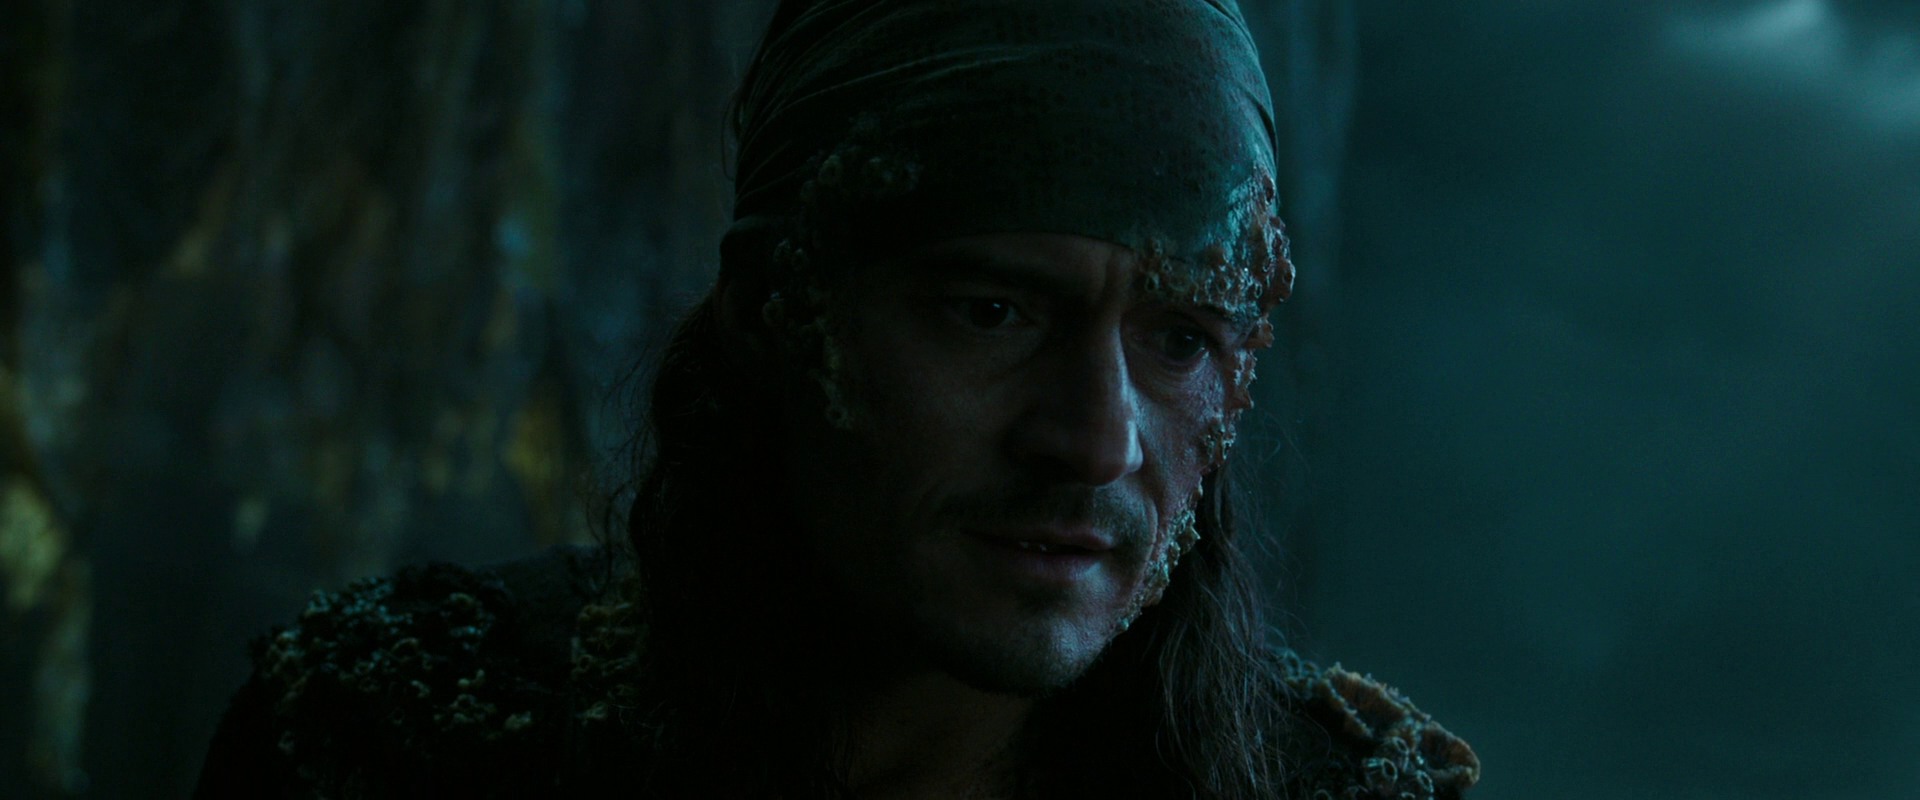 pirates of the caribbean 5 torrent download 1080p